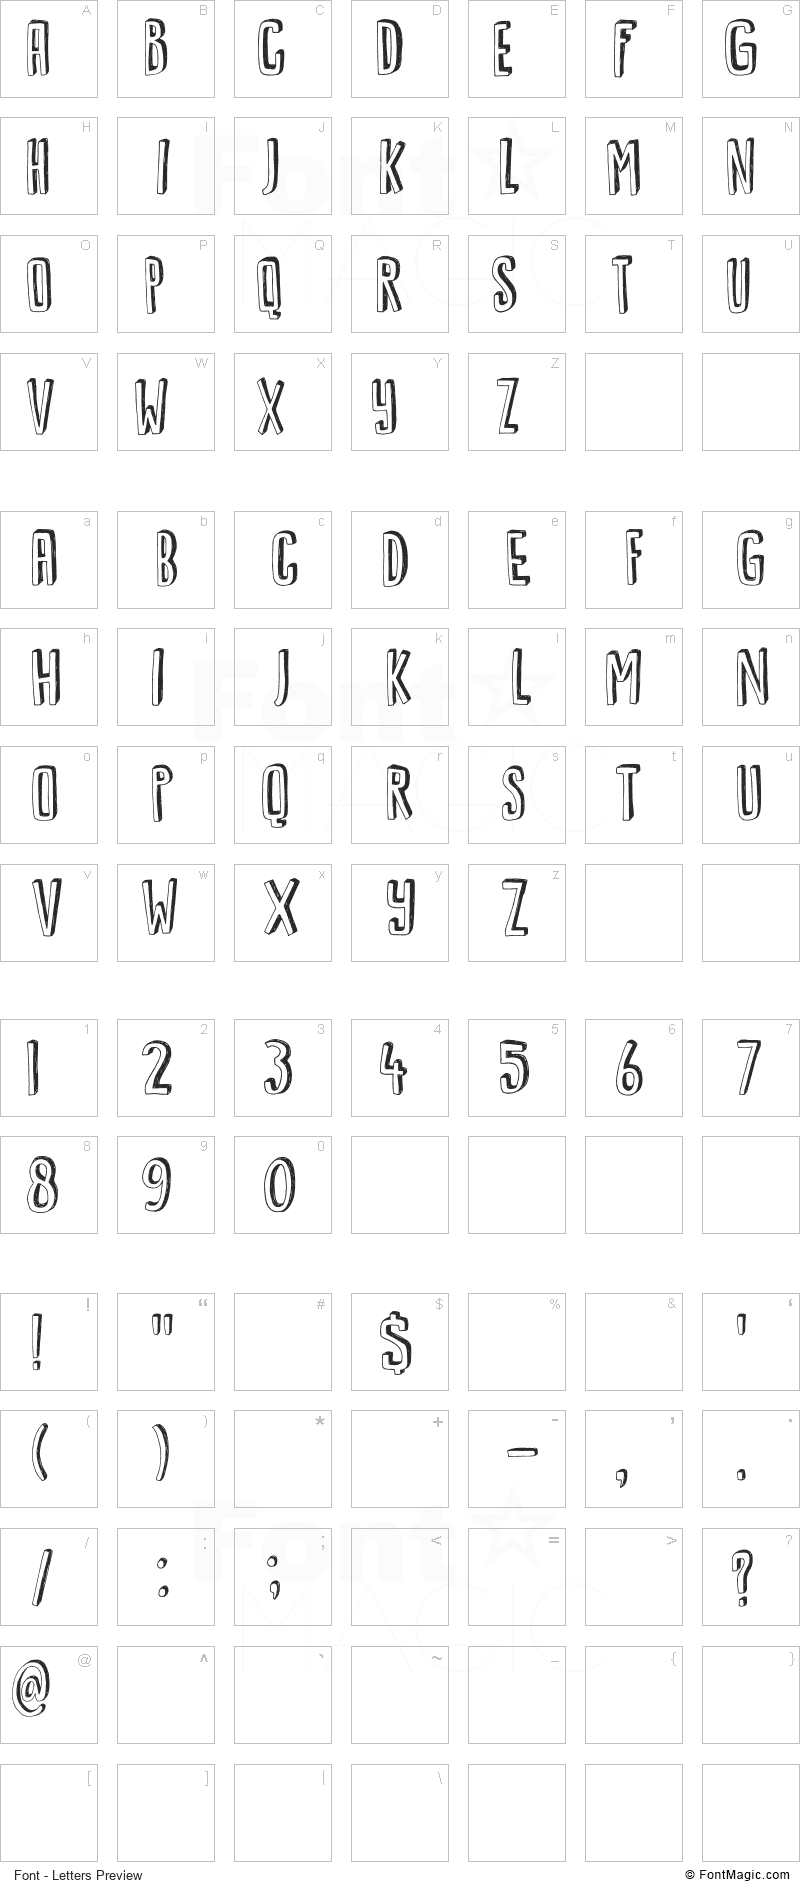 DK Kwark Font - All Latters Preview Chart